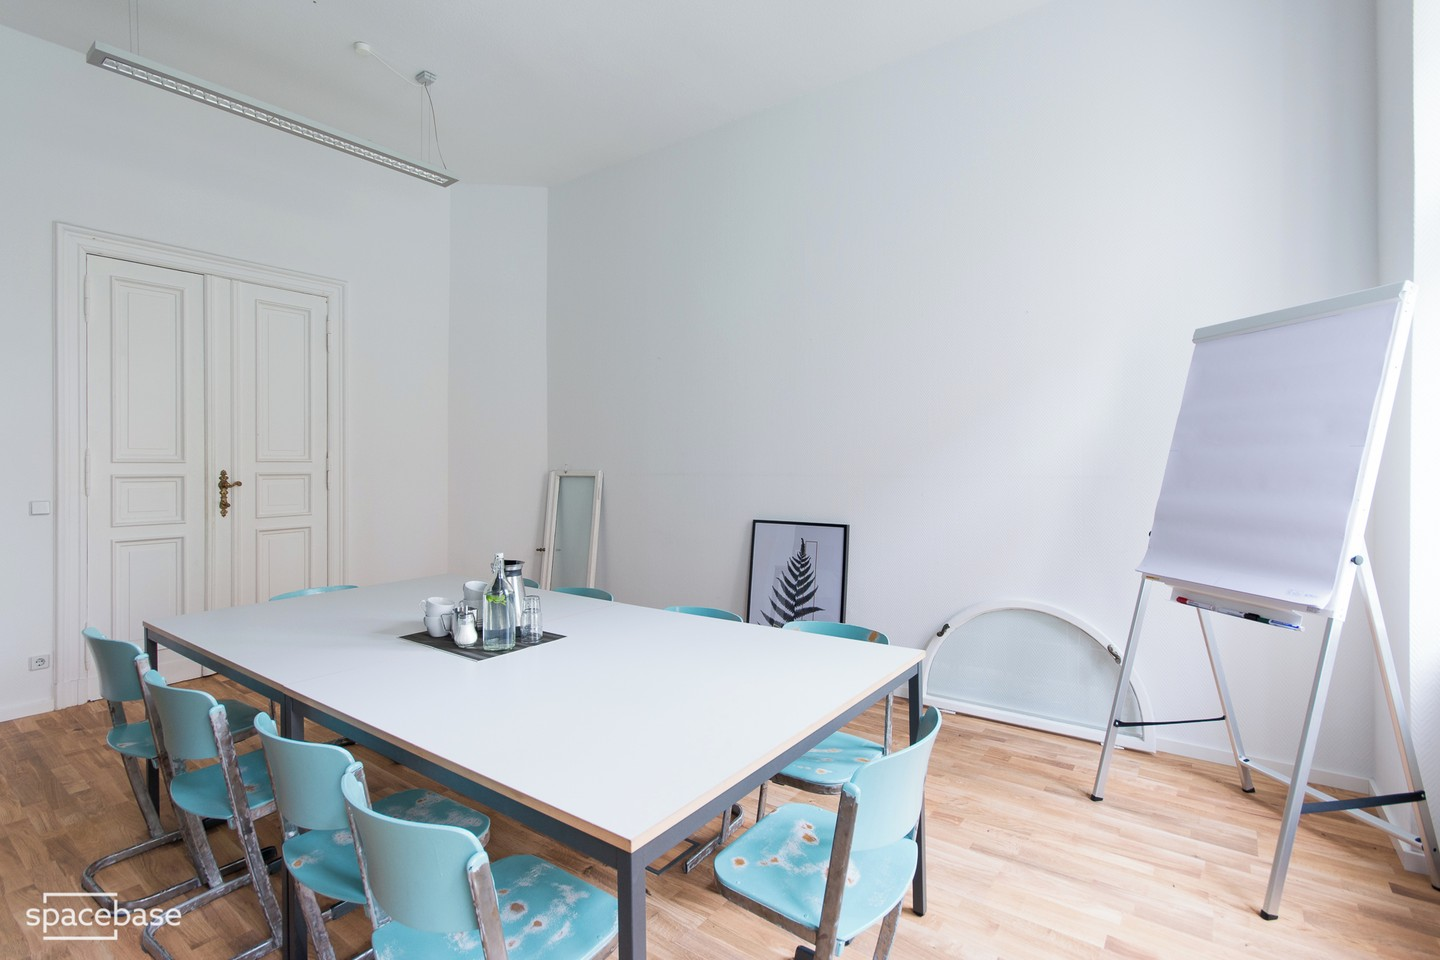 Berlin conference rooms Espace de Coworking juggleHUB Coworking - Meeting Room image 7